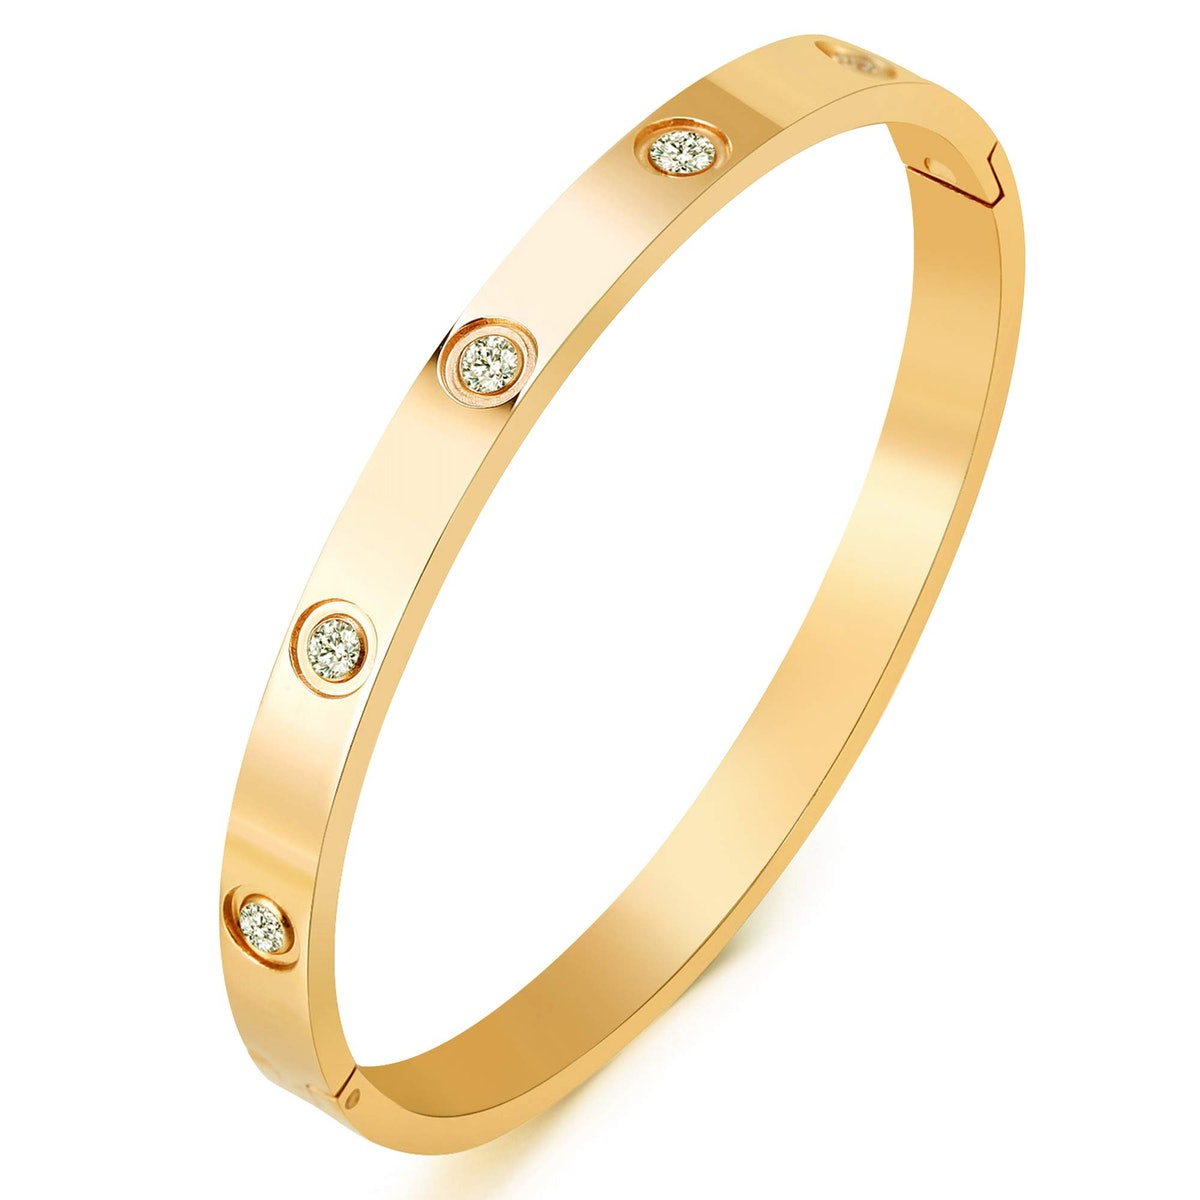 MVCOLEDY 18K-Gold Plated Cubic Zirconia Bangle